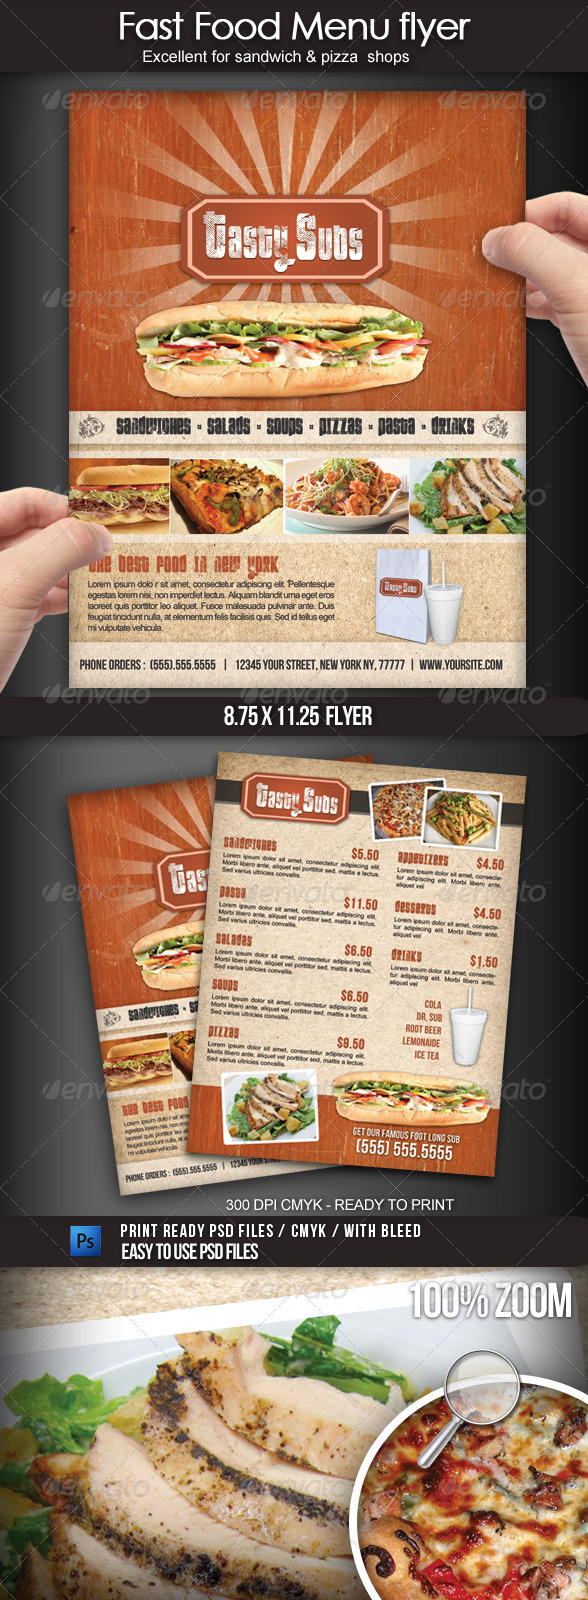 Fast food menu flyer graphicriver for Sandwich shop menu template